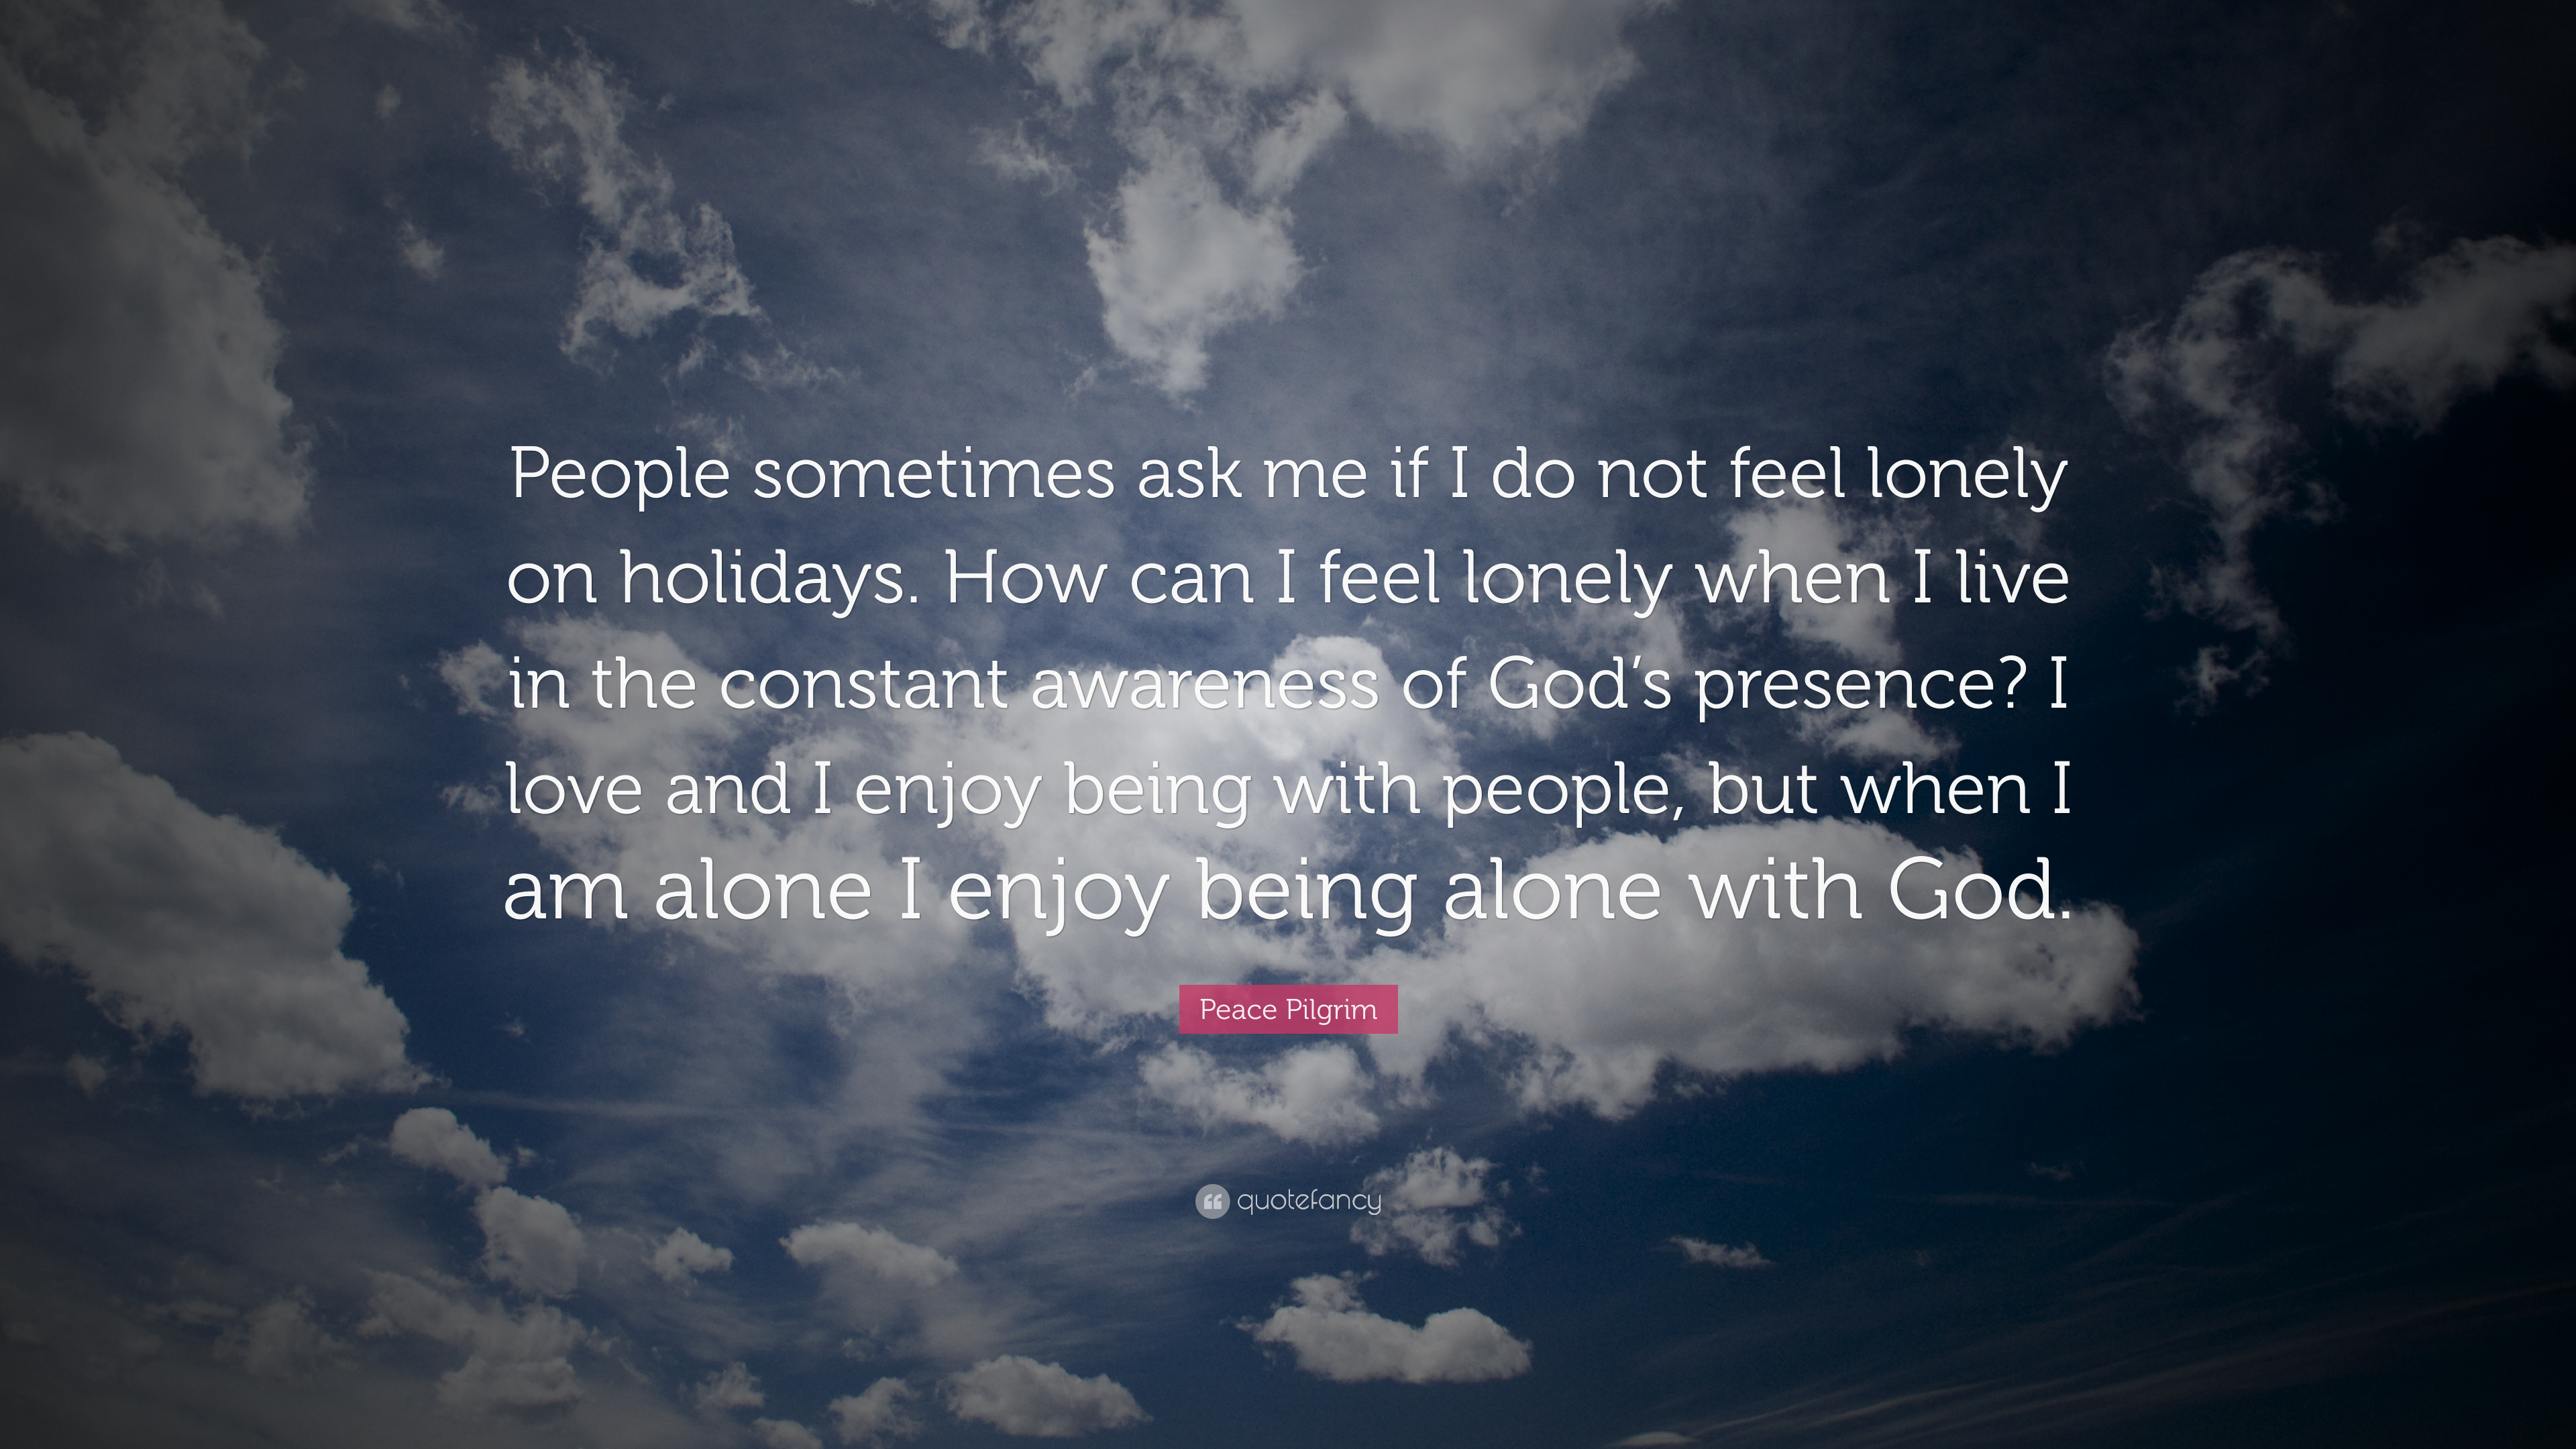 What can i do when i am alone